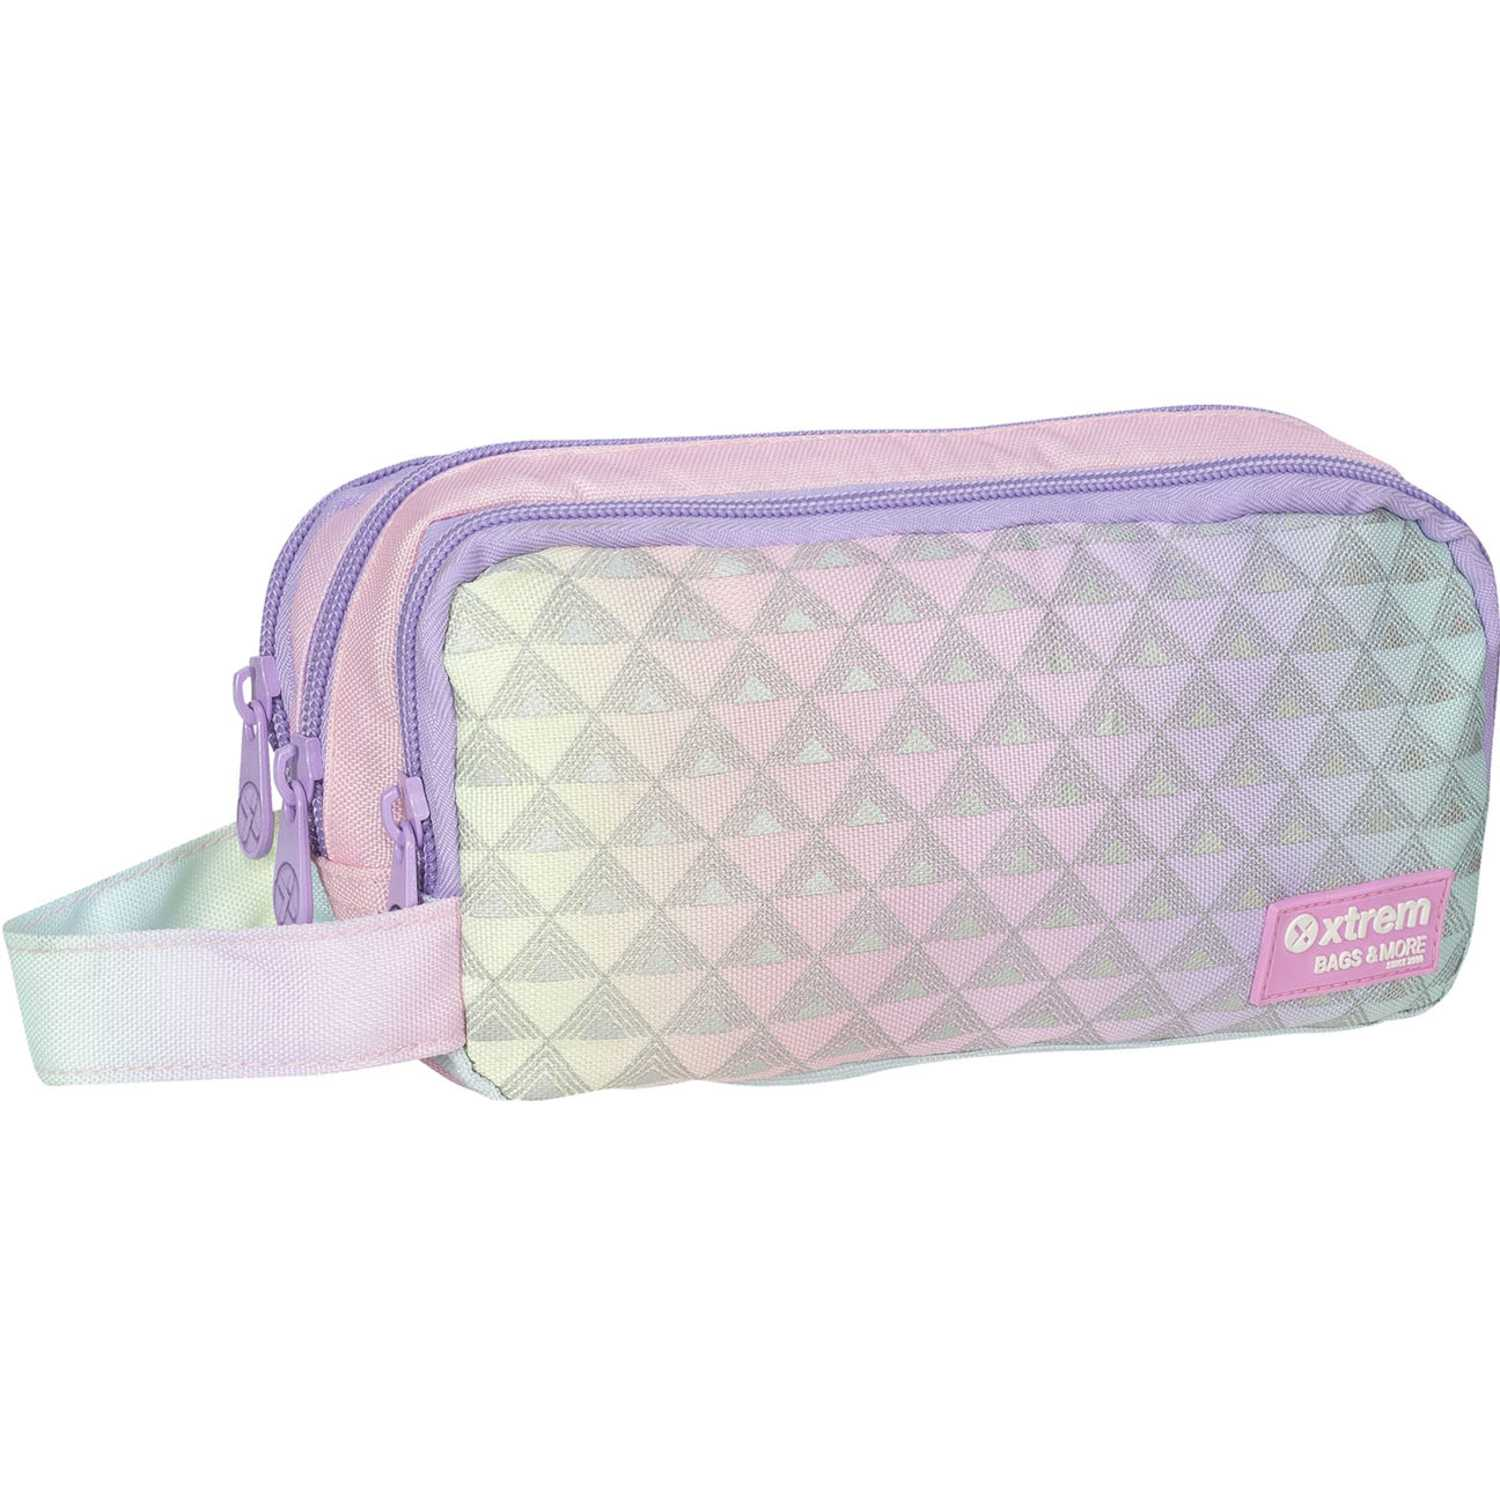 Cartuchera de Niña Xtrem Lila pencil box neon faded university 840